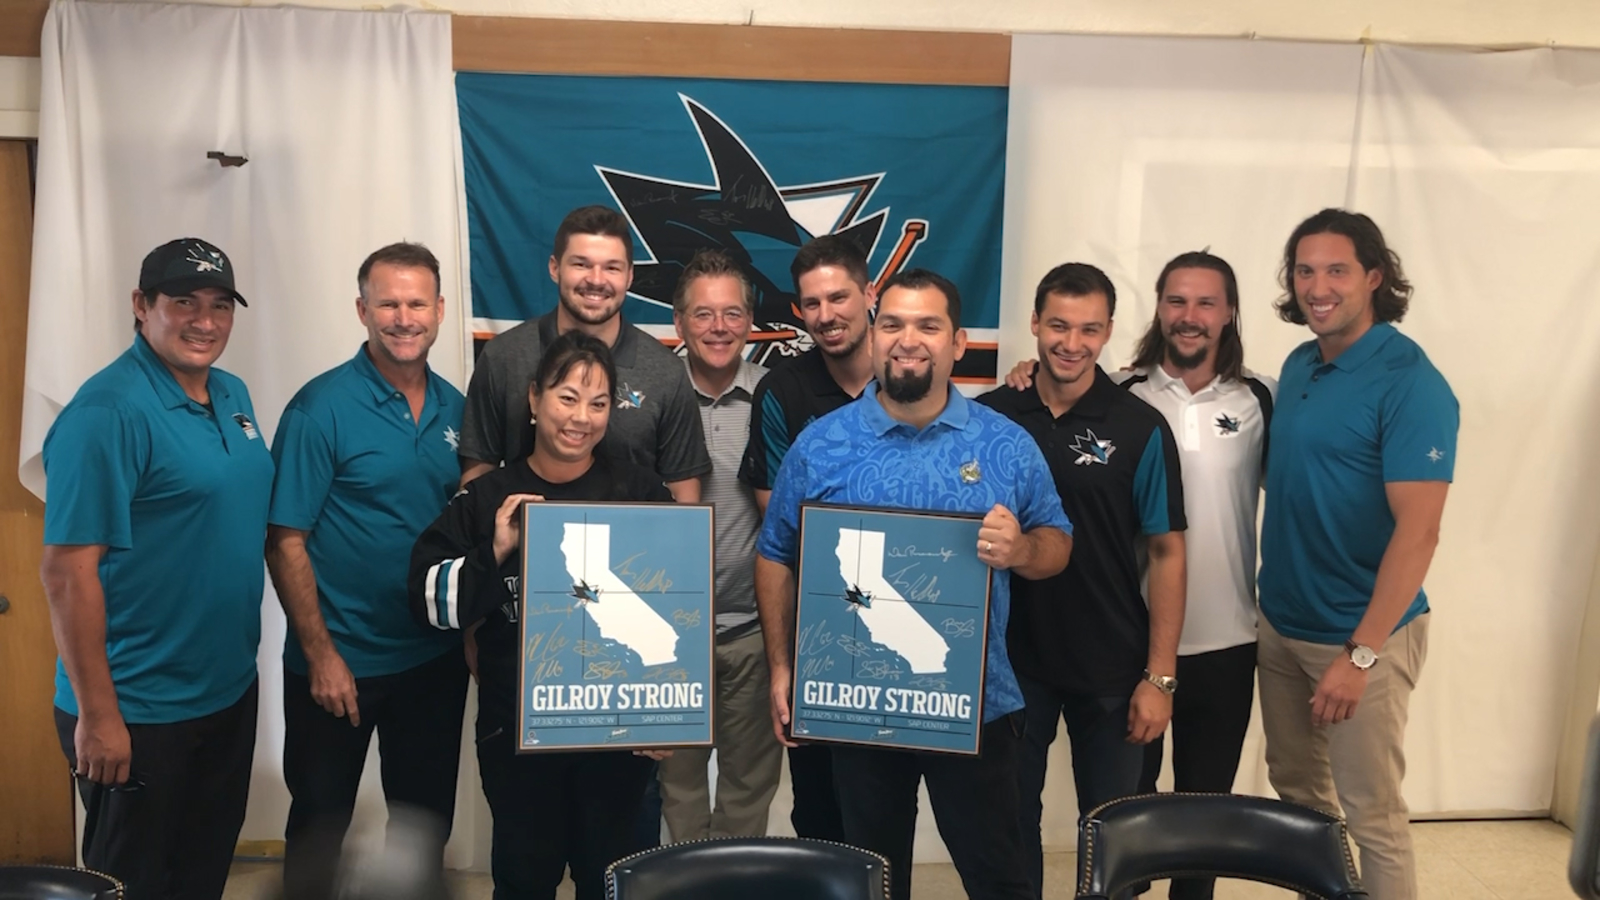 Logan Couture organizes San Jose Sharks autograph session to raise money for Garlic Festival victims